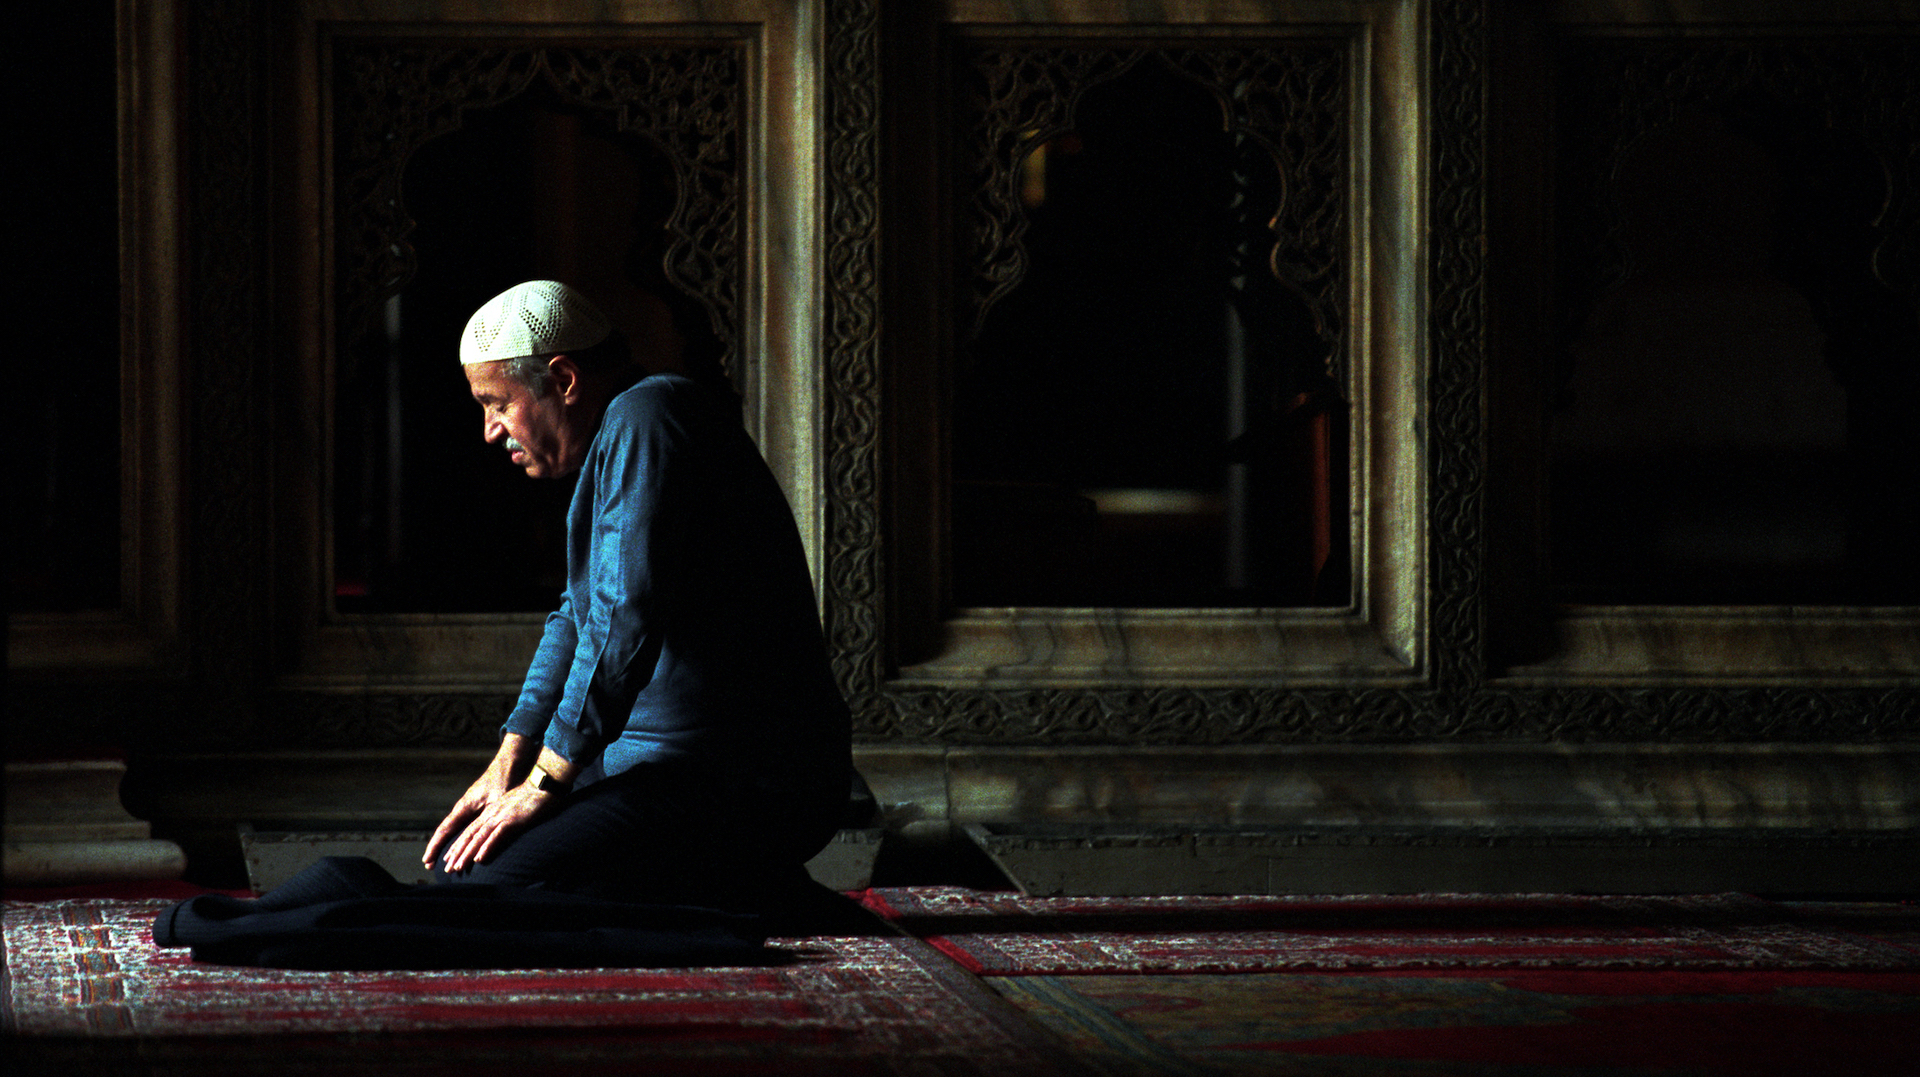 How is Muslim Fasting Different from Christian Fasting?